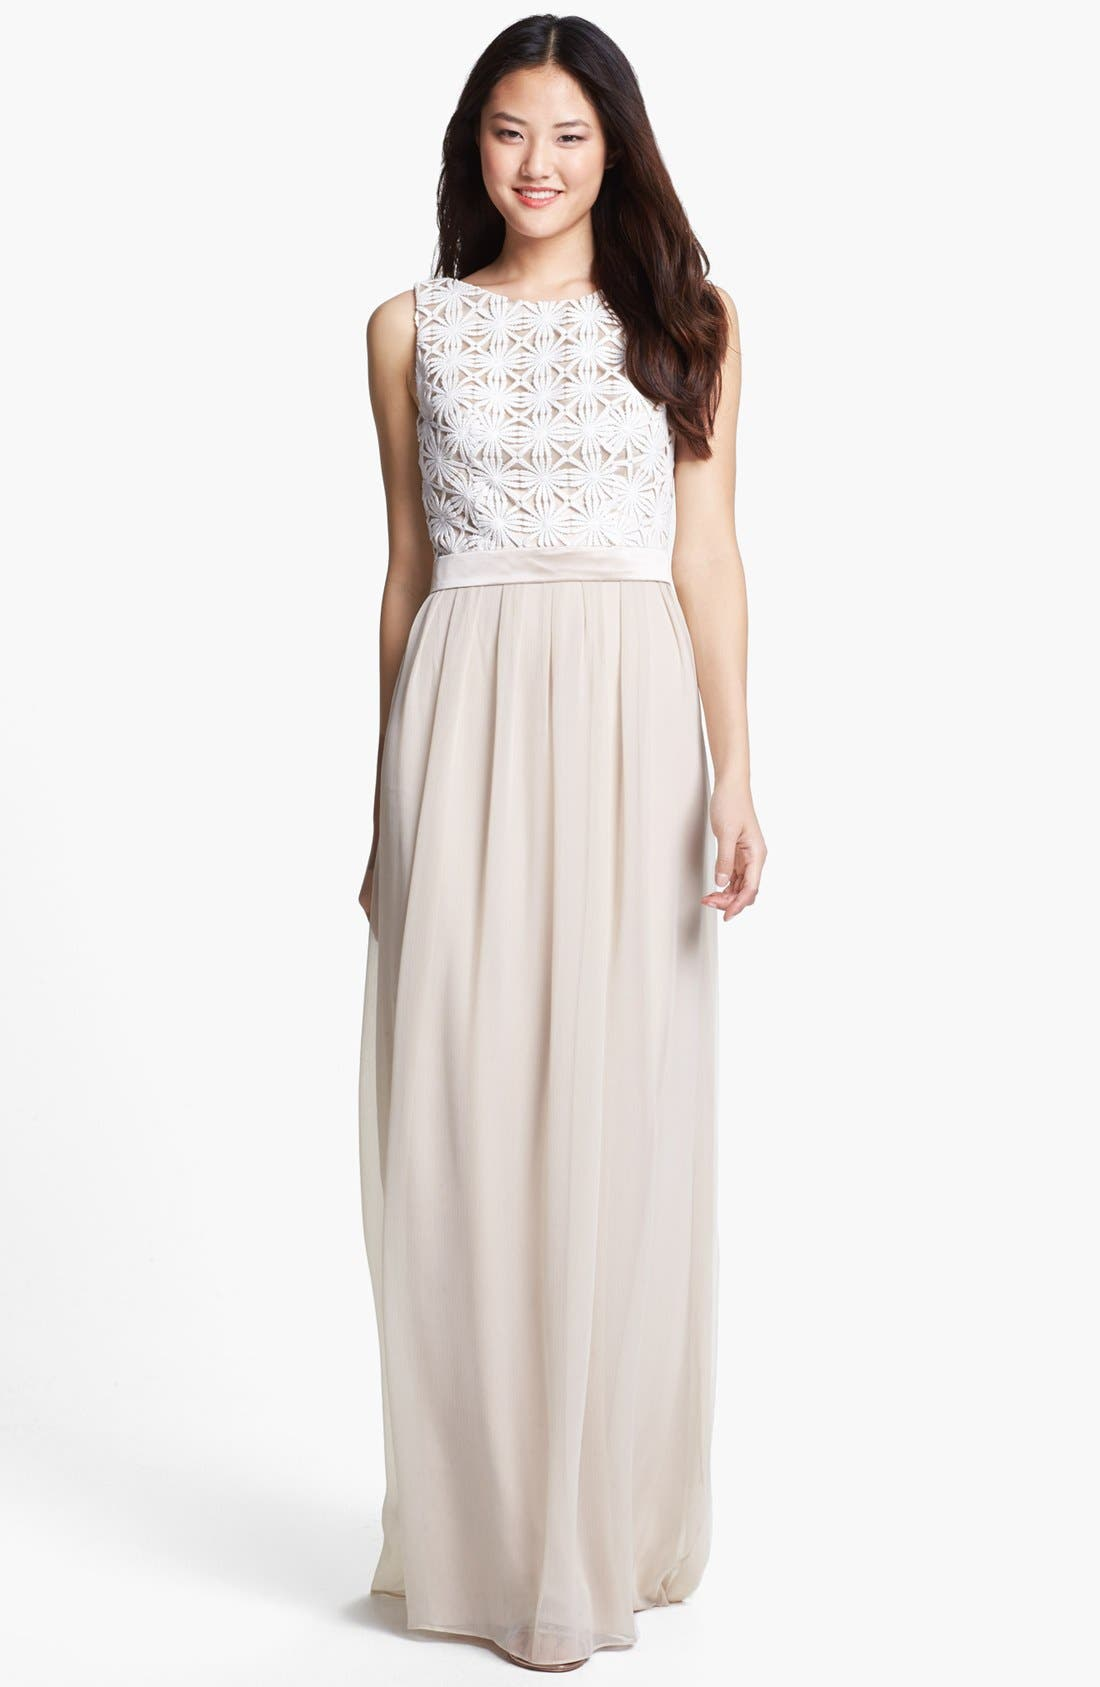 Alternate Image 1 Selected - Lela Rose Bridesmaid Lace & Chiffon Dress (Online Only)